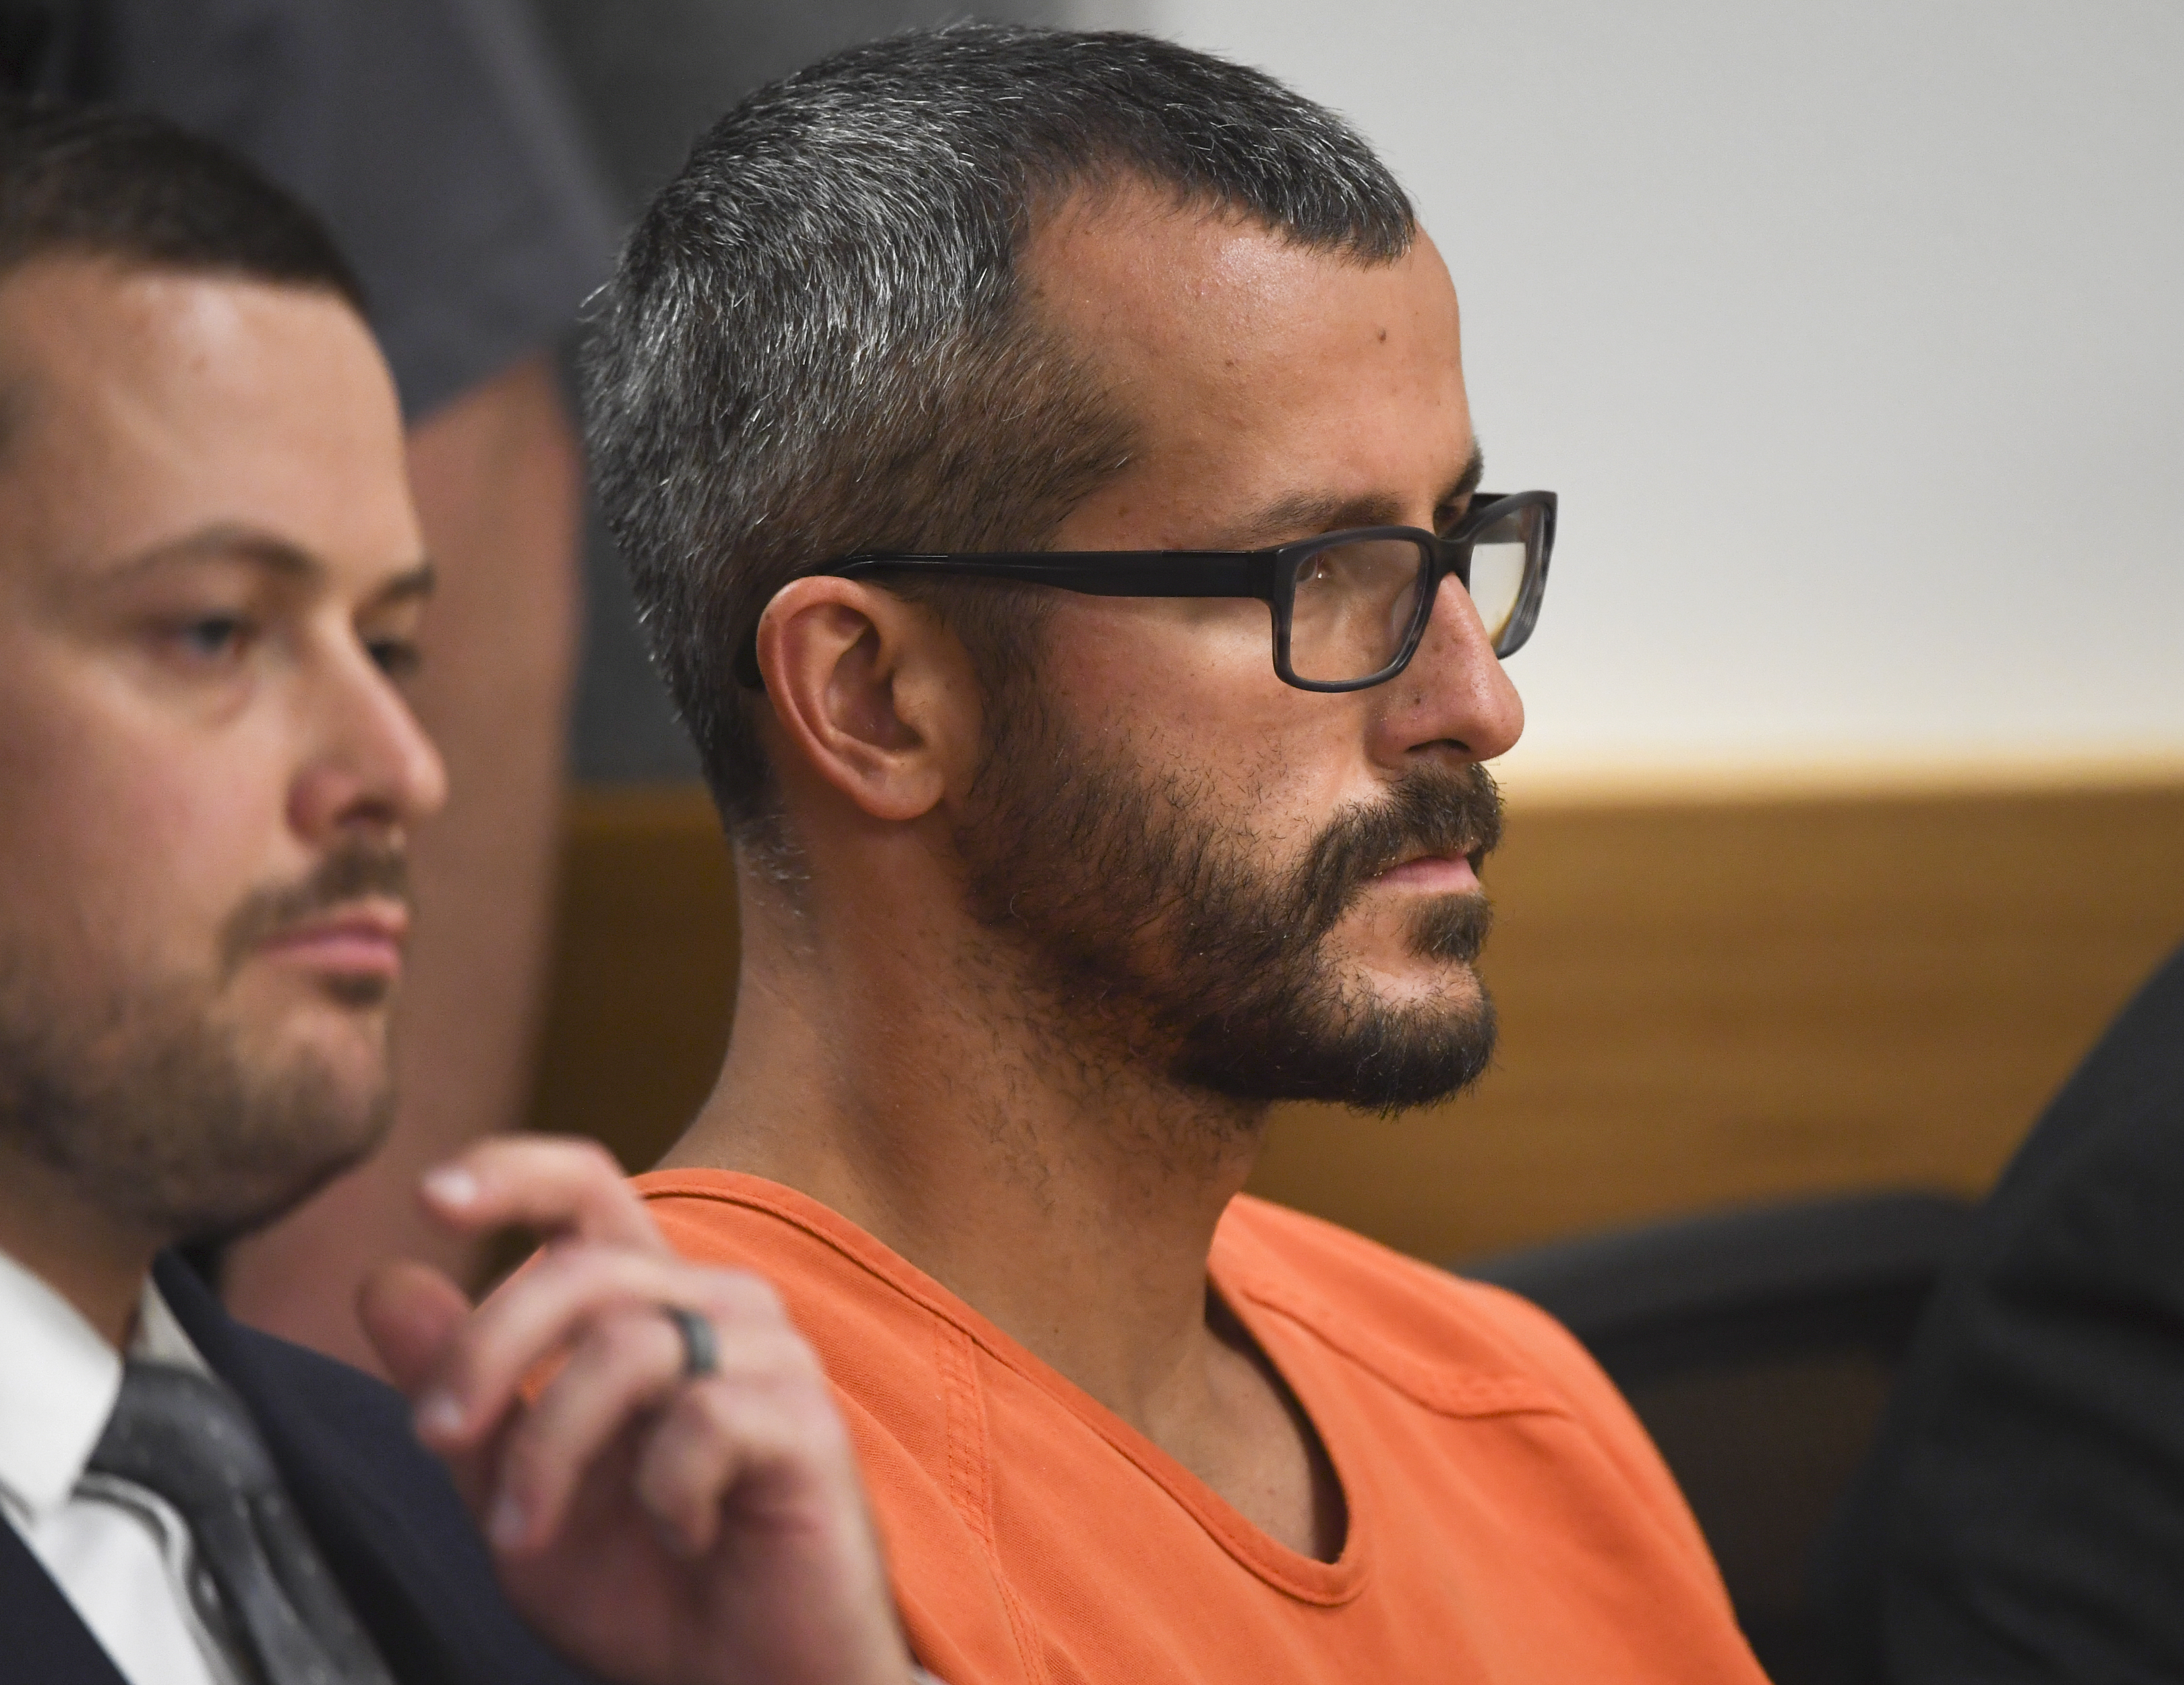 Christopher Watts is in court for his arraignment hearing at the Weld County Courthouse on August 21, 2018, in Greeley, Colorado. Watts faces nine charges, including several counts of first-degree murder of his wife and his two young daughters.